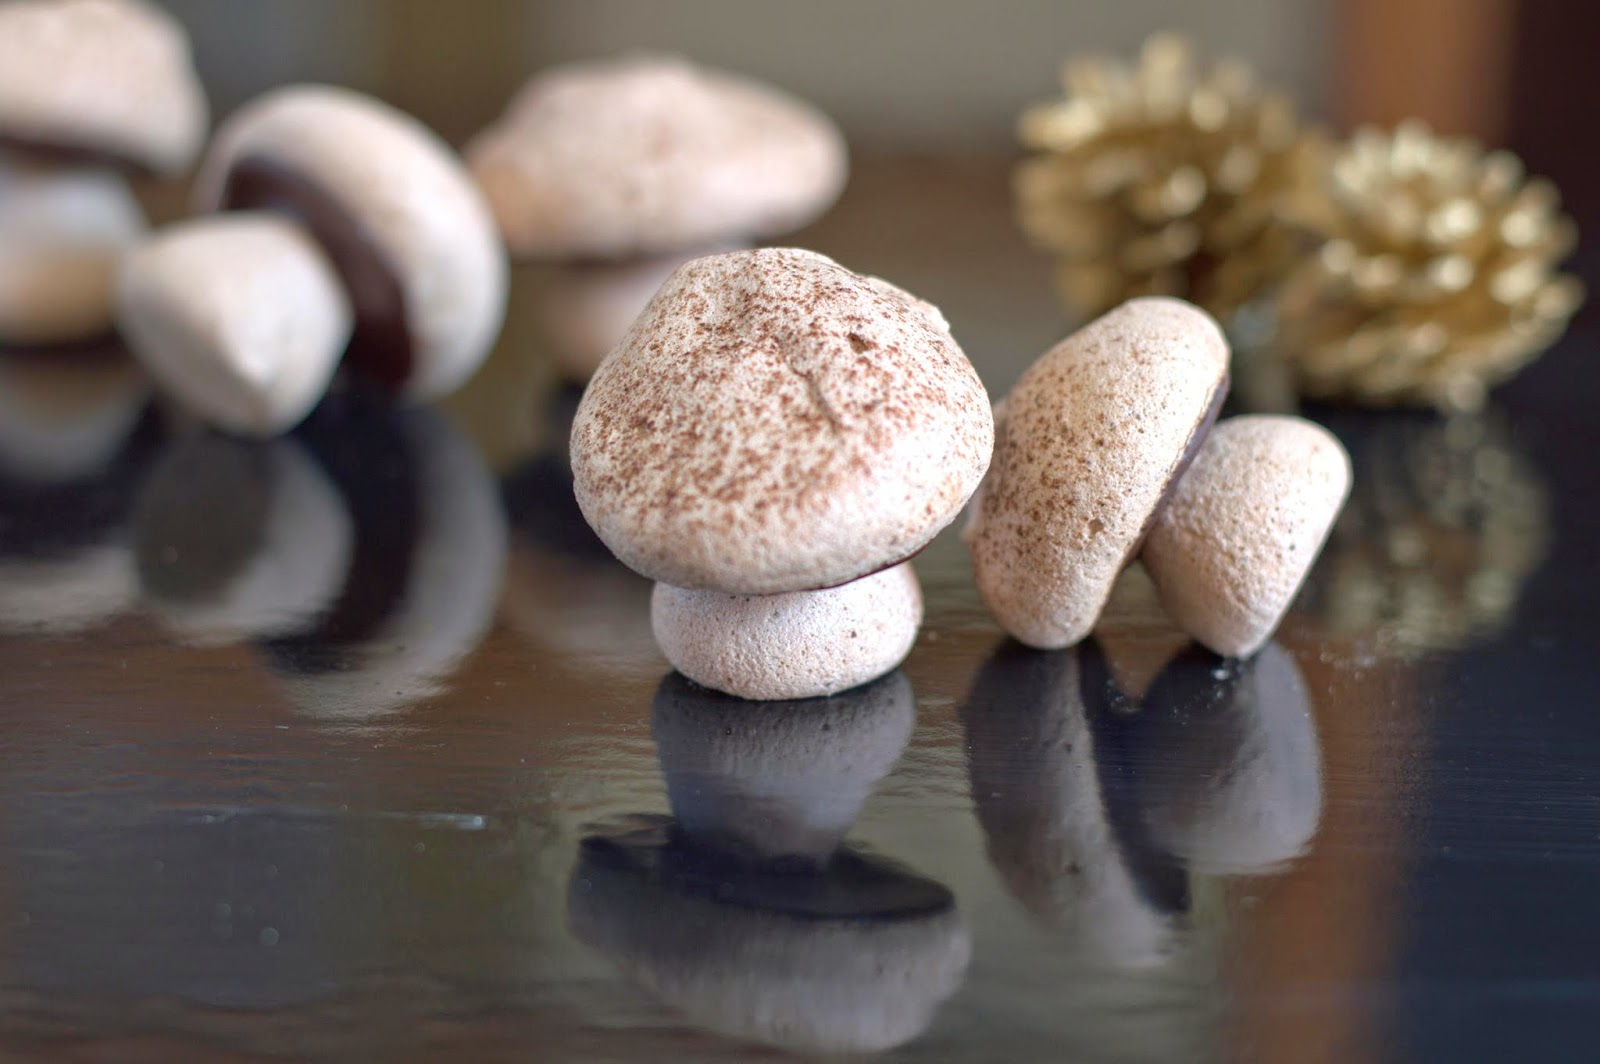 Cakes And More!: Cocoa Meringue Mushrooms - Welcome December!